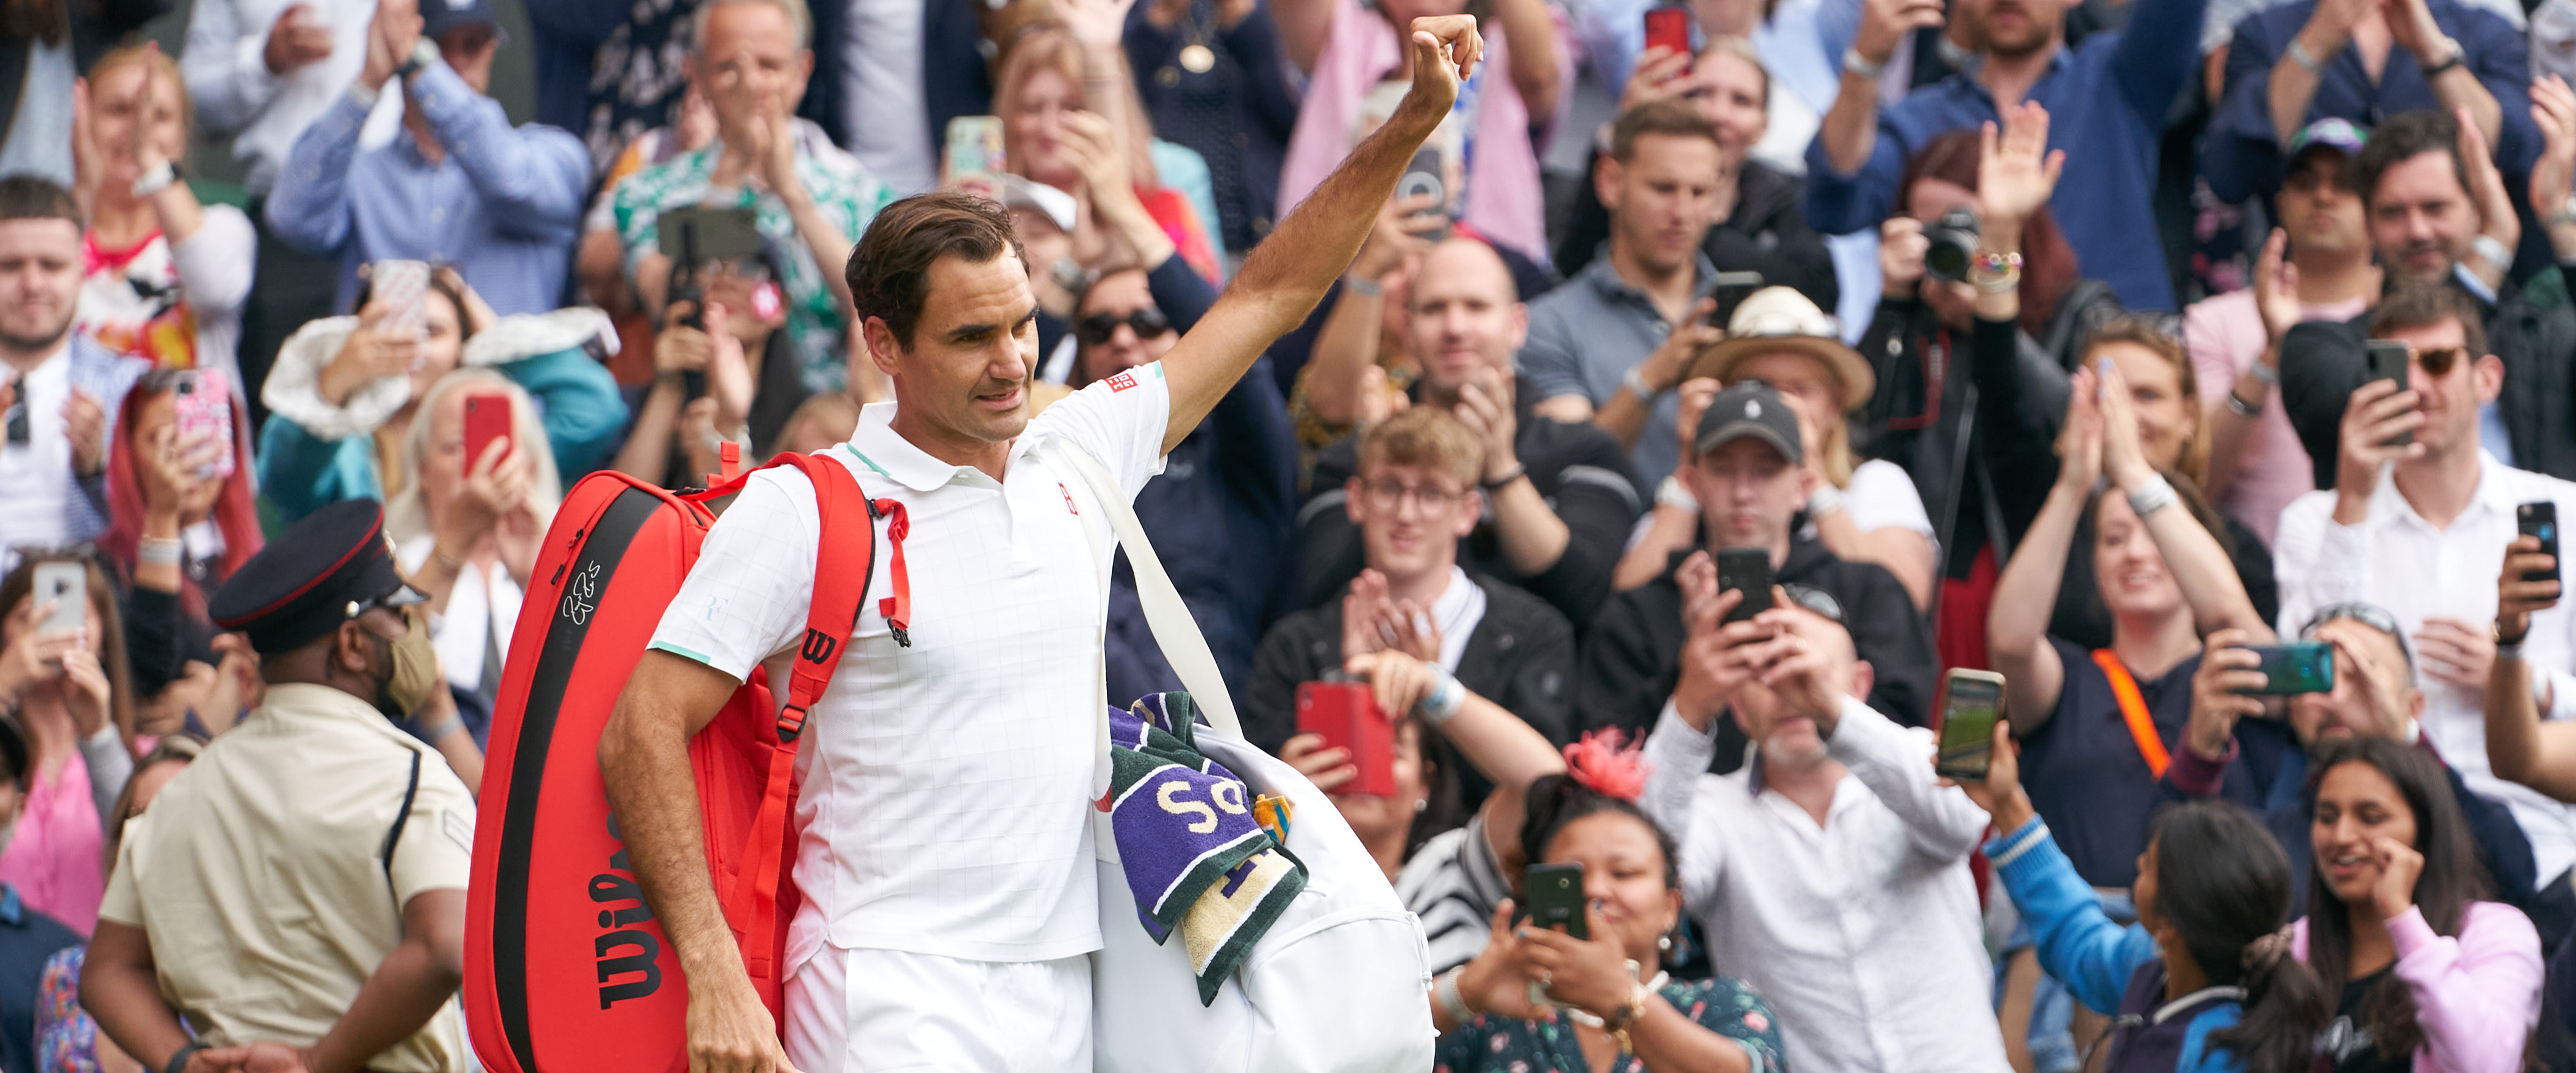 Tennis: Are there any big names left in the Olympic field?